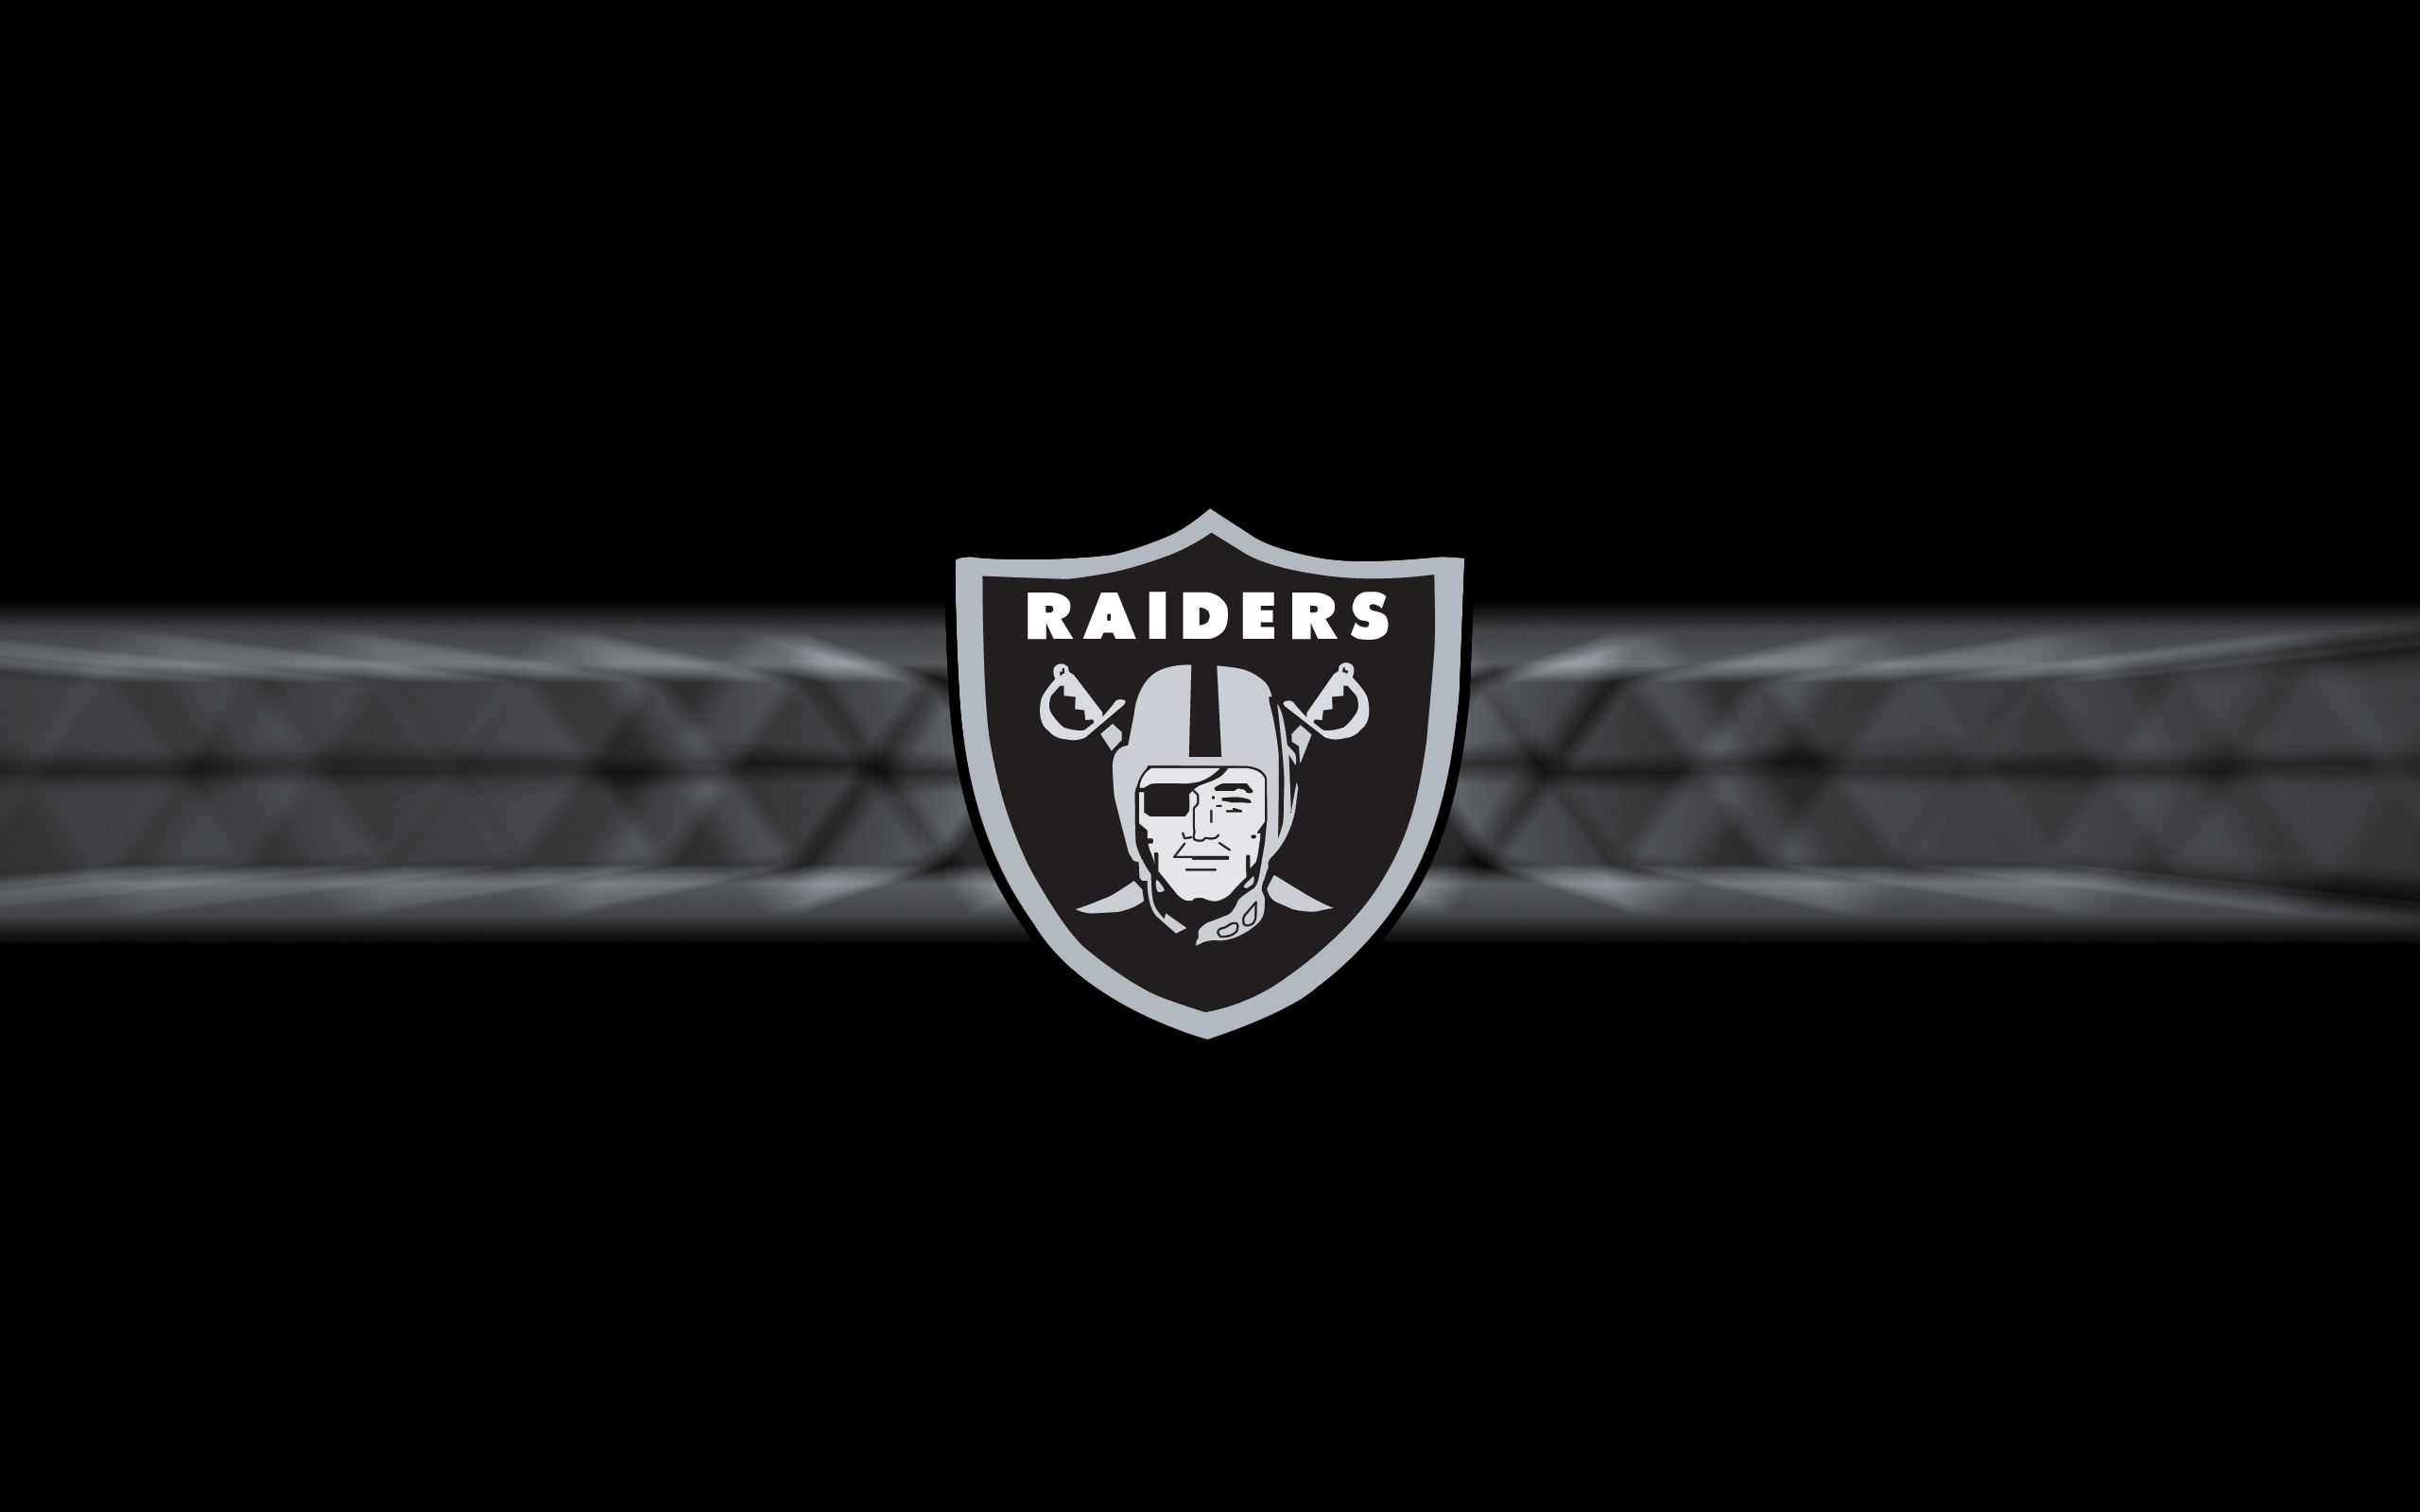 Oakland Raiders 2014 NFL Logo Wallpaper